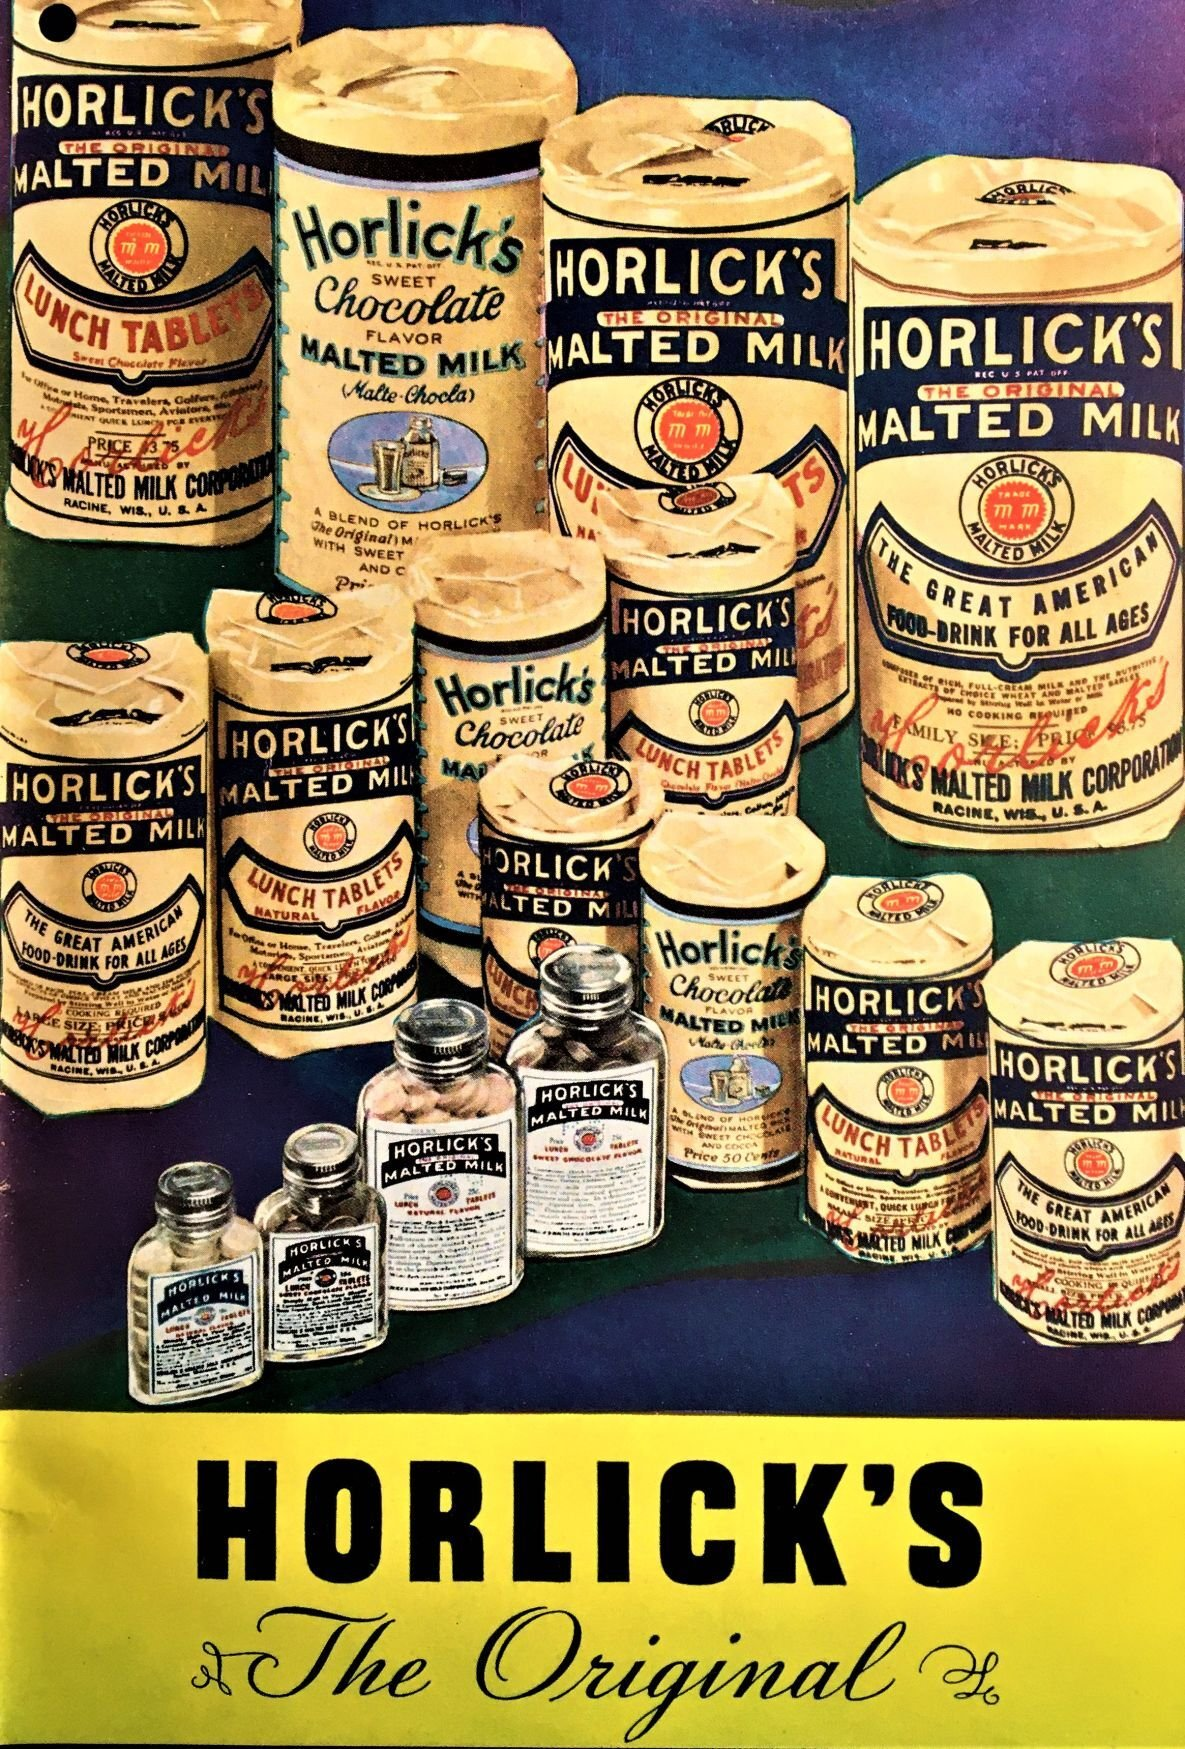 1937 color Horlick's Malted Milk ad showing product line, contemporary packaging